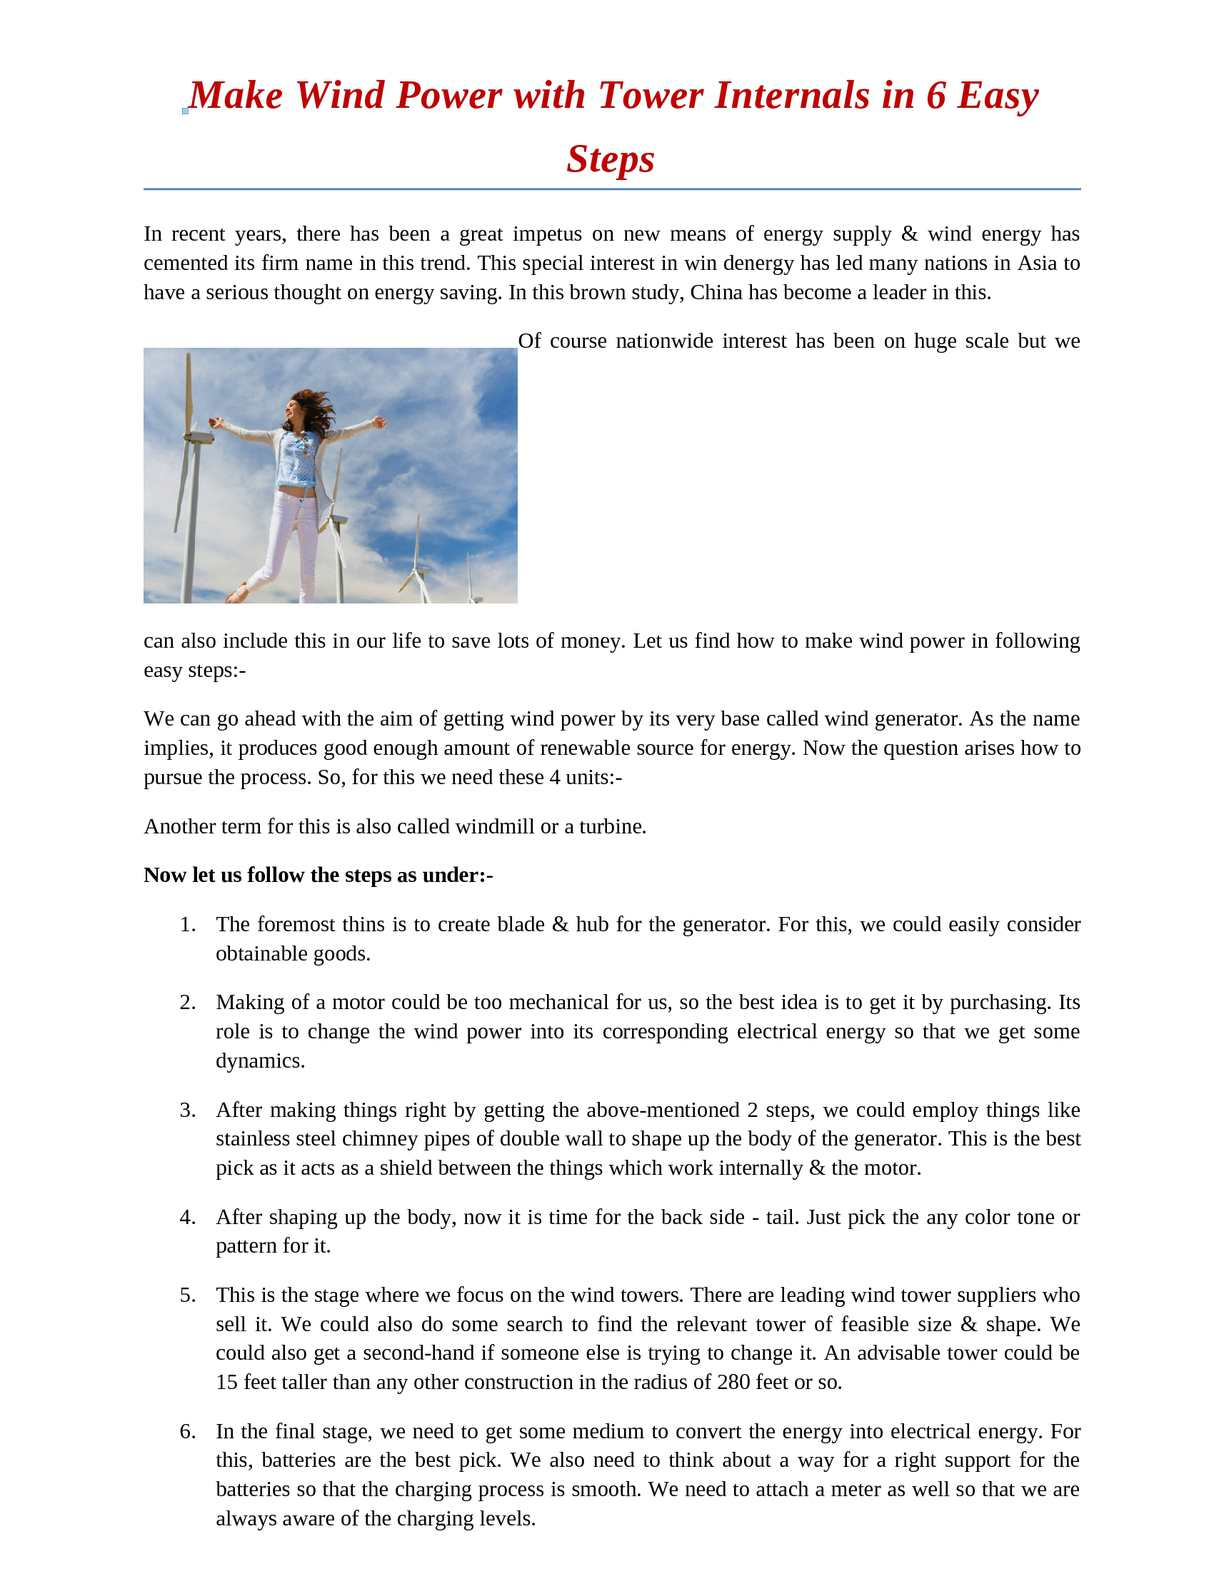 Calaméo - Make Wind Power with Tower Internals in 6 Easy Steps